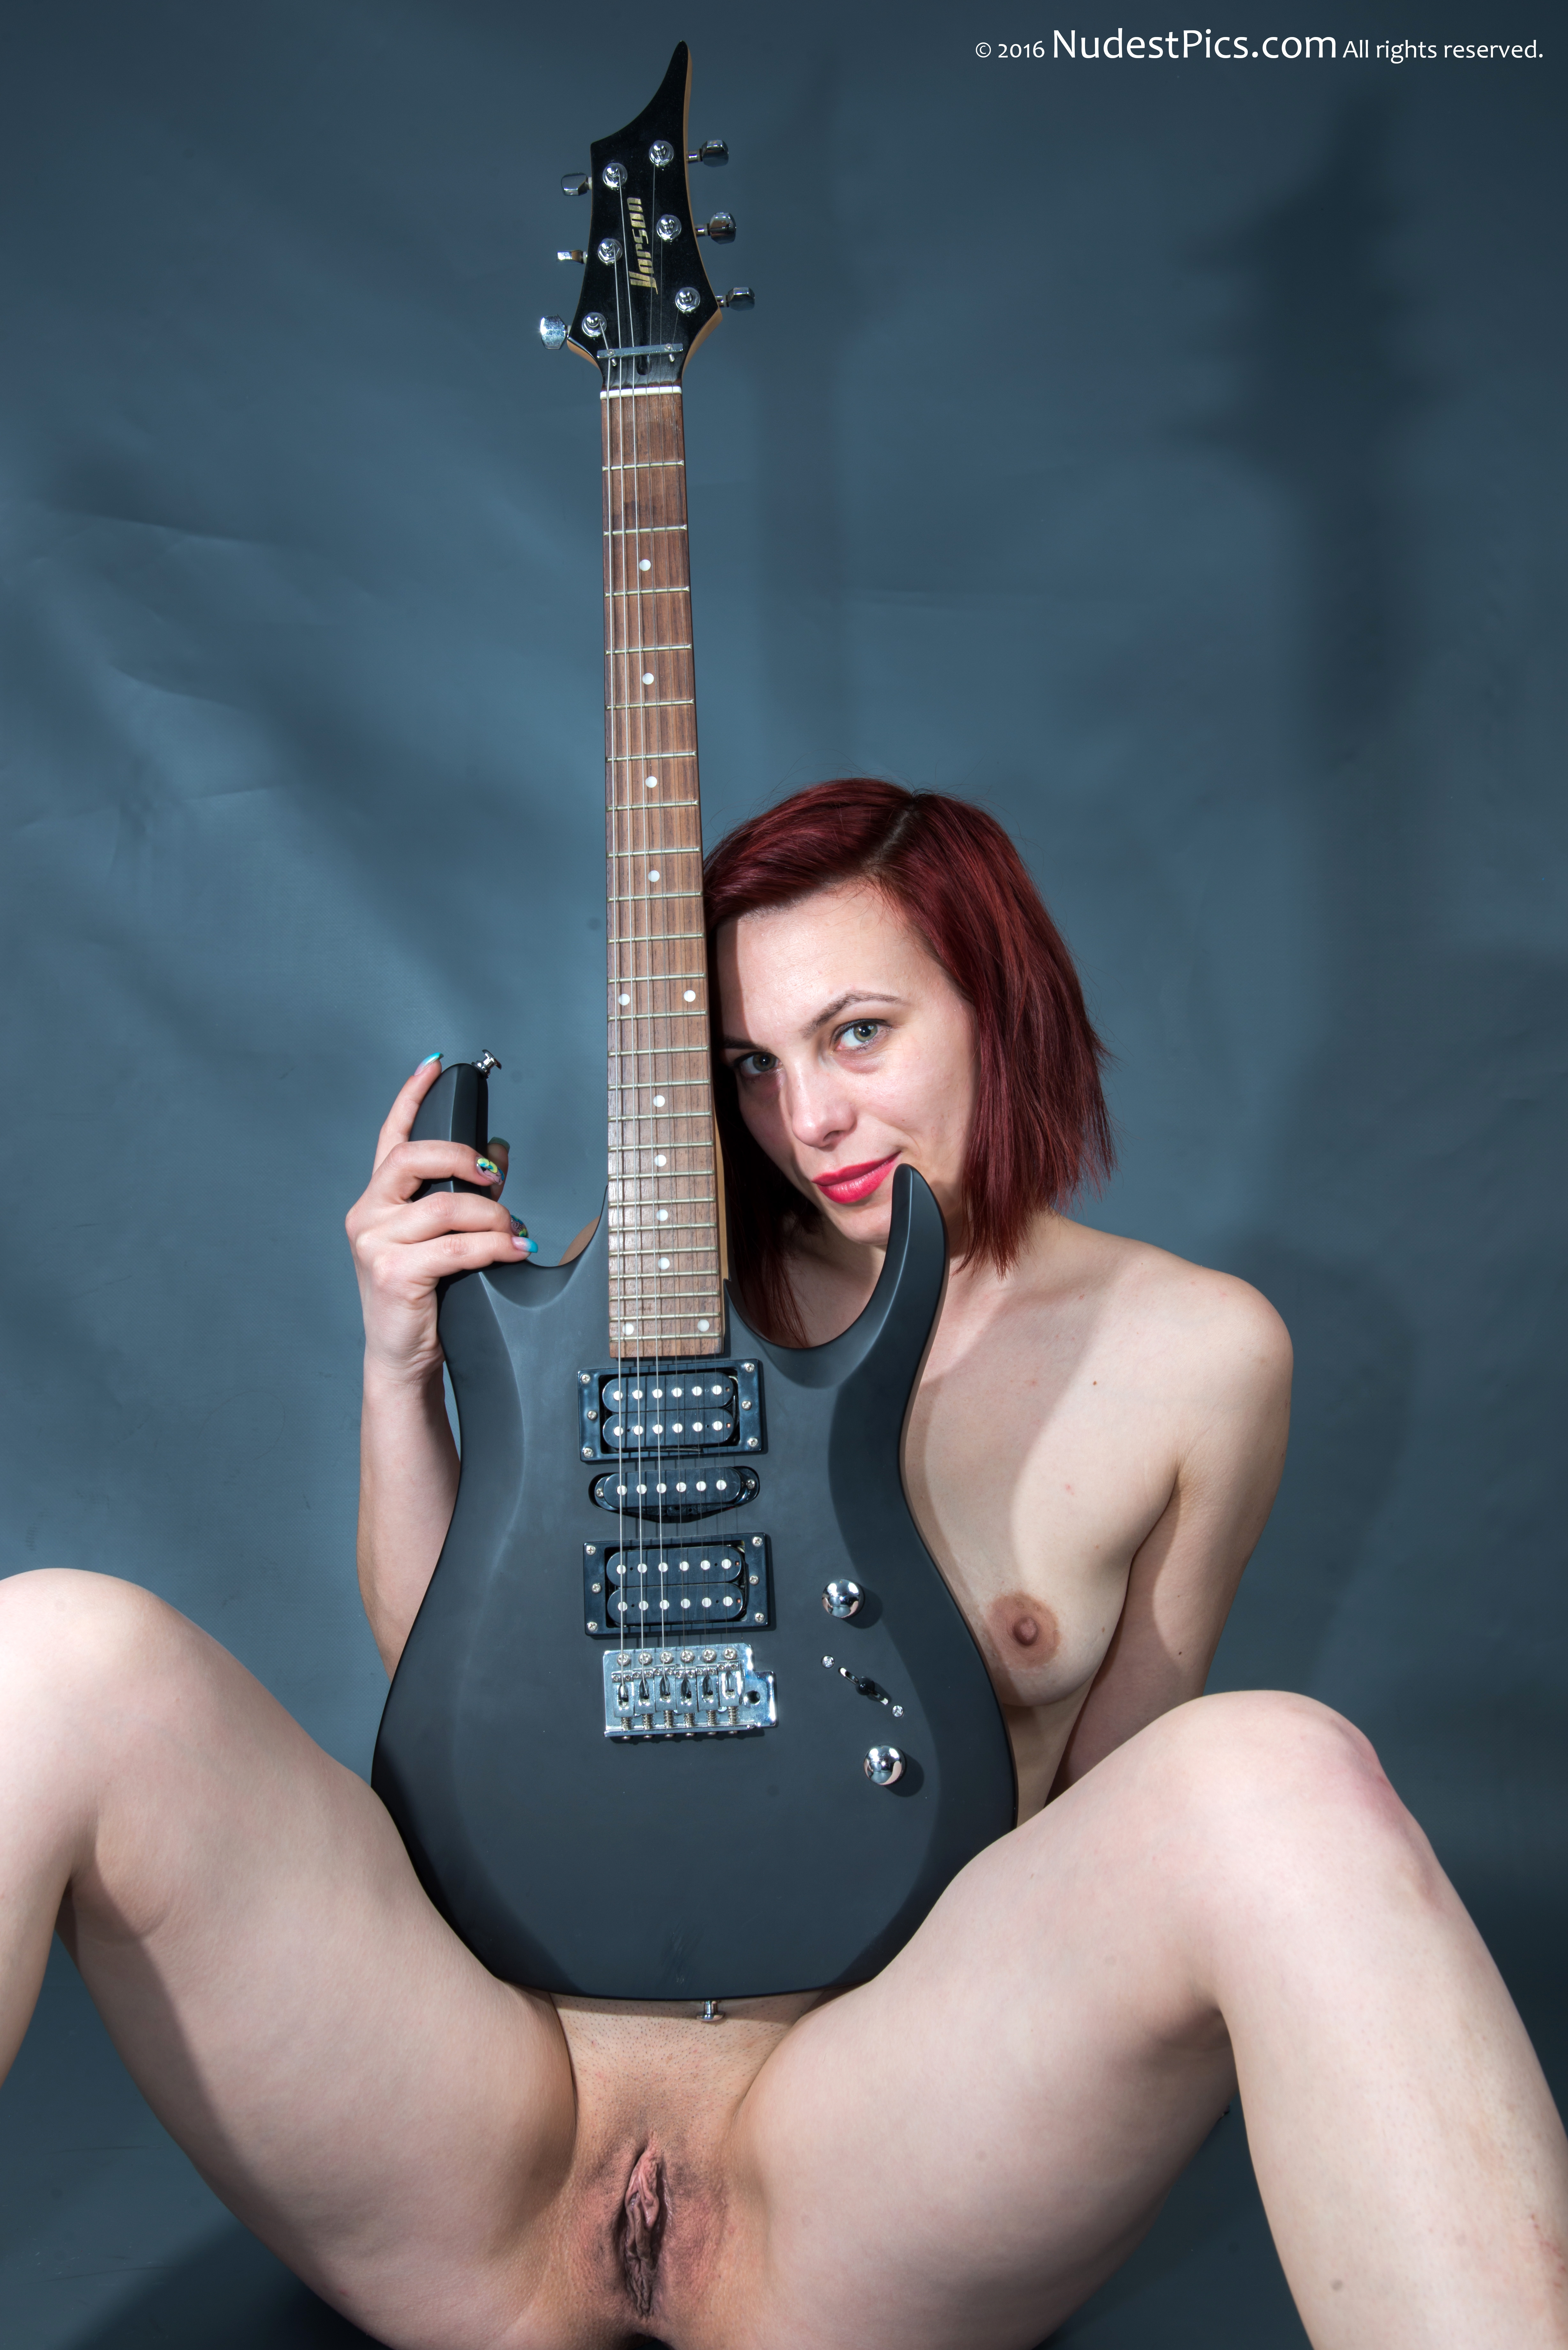 Redhead Nude Canadian Girl with Electric Guitar